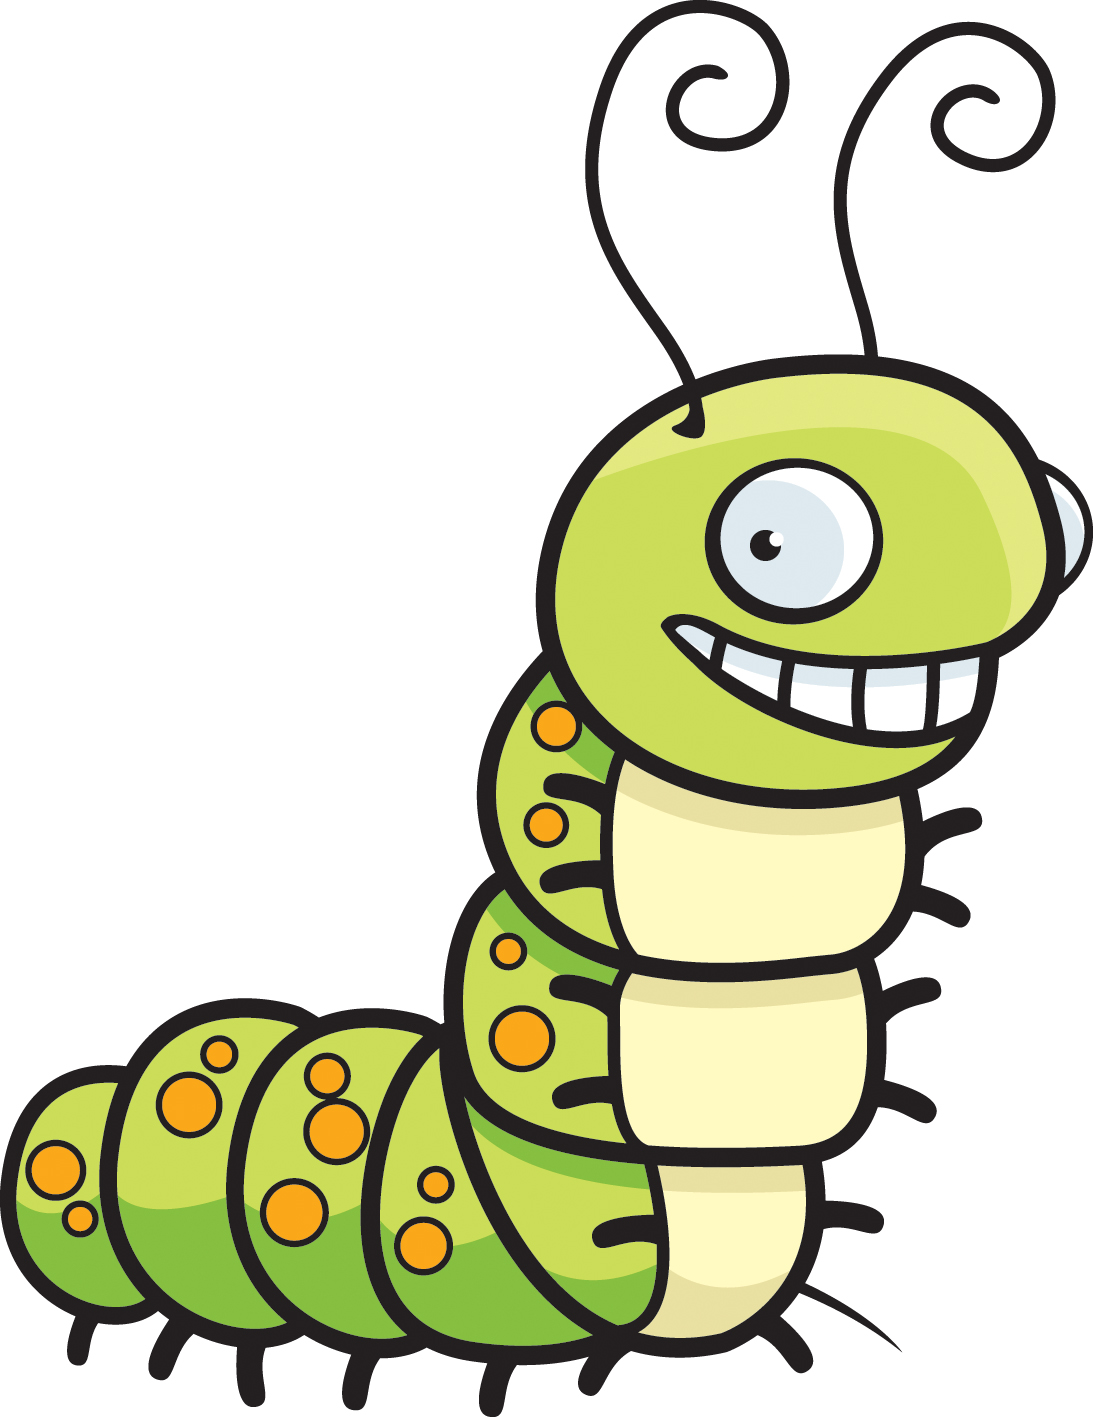 Worms In Dirt Clipart